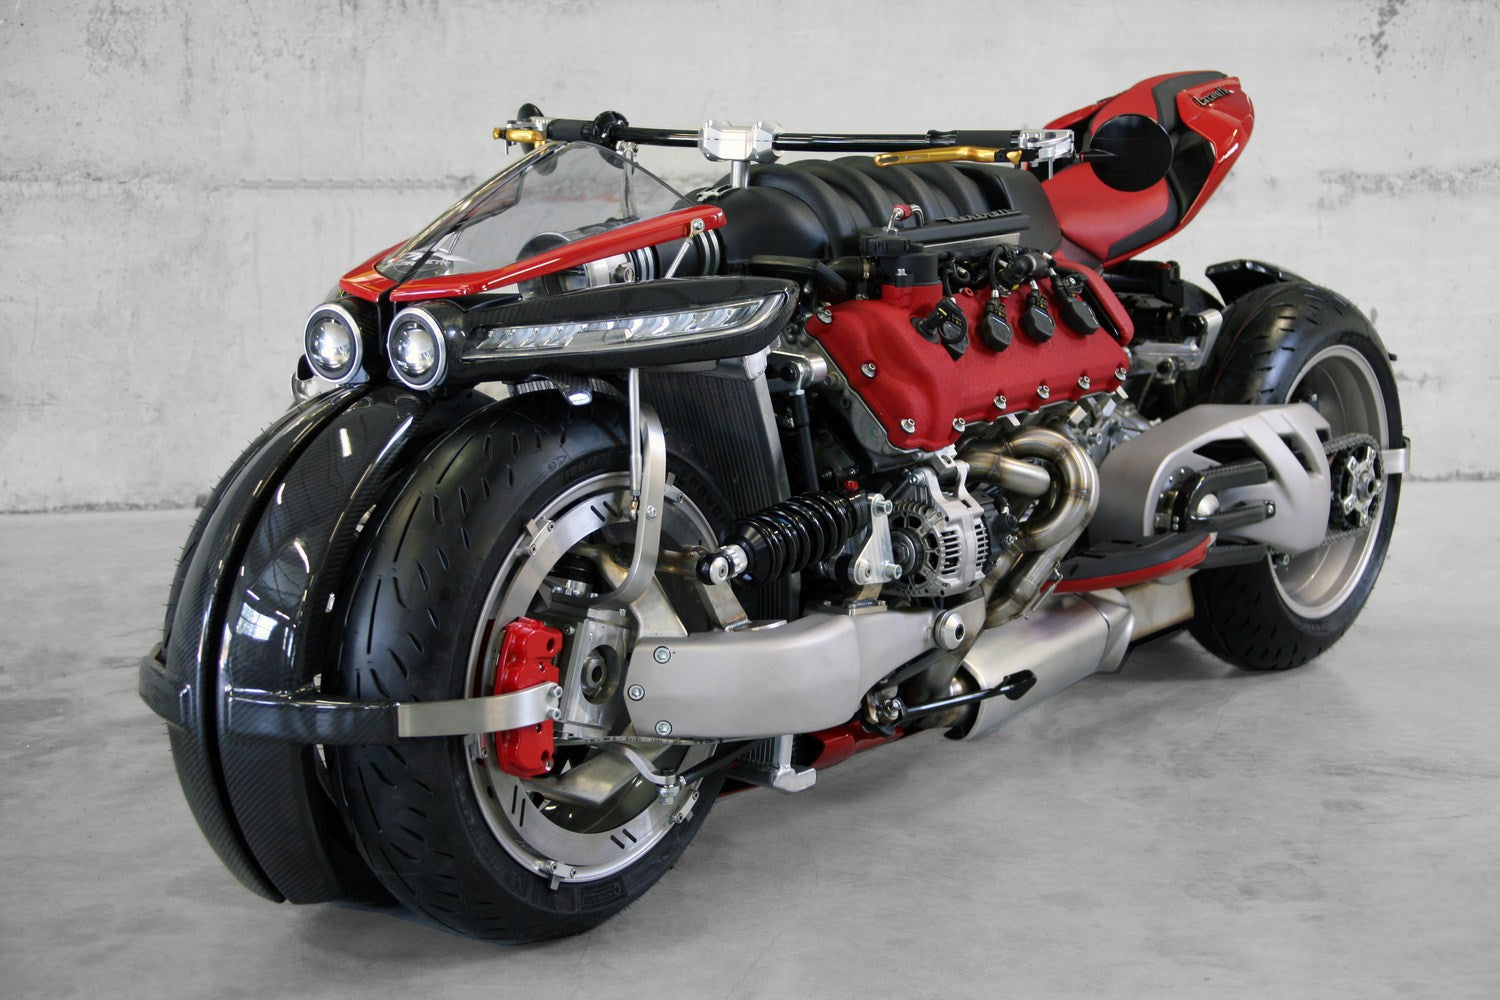 HOW MUCH DOES THE LAZARETH LM 847 COST